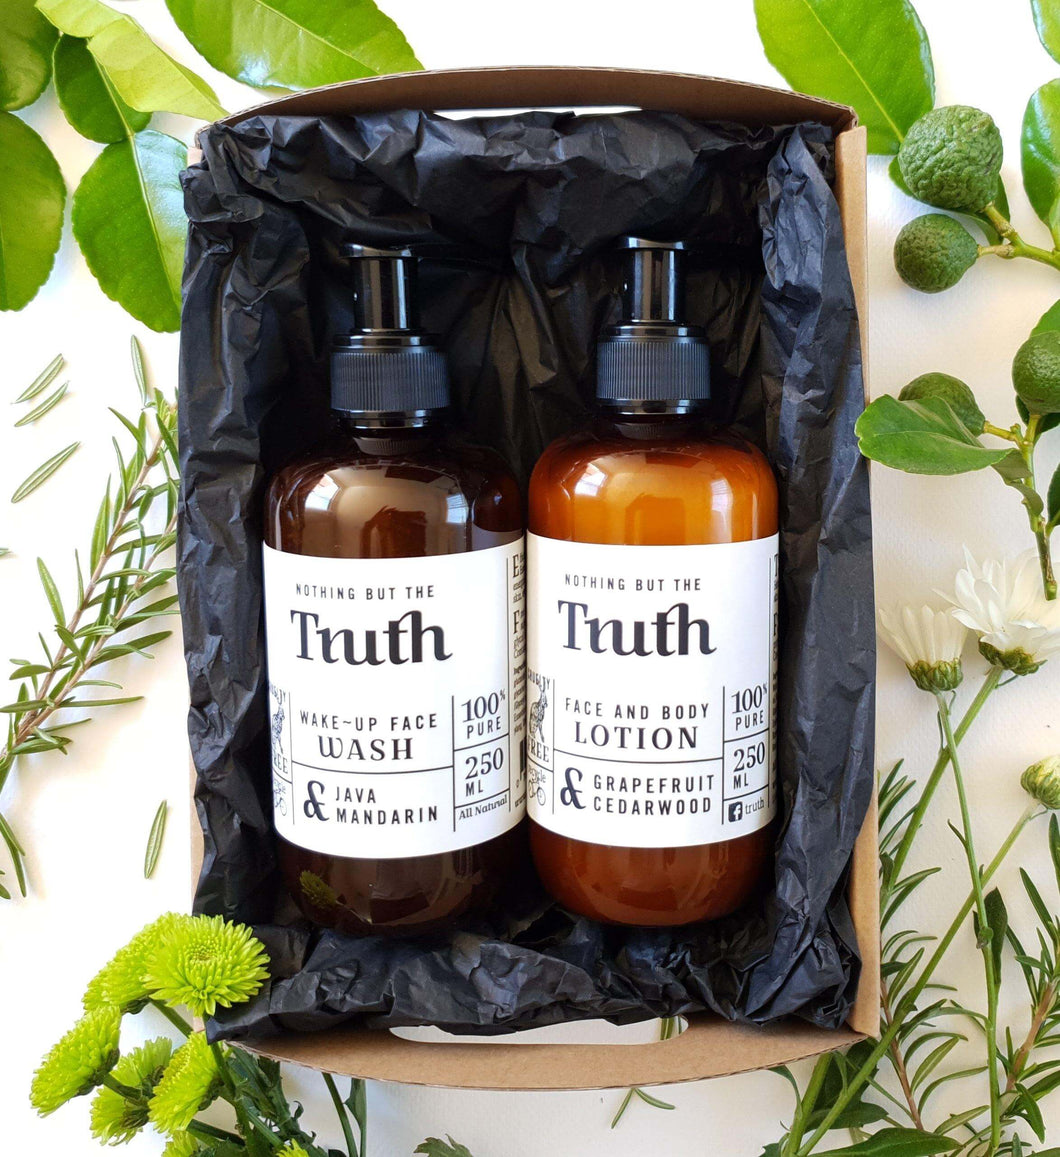 Wake Up Pack | Grapefruit & Cedarwood Face & Body Lotion |  Java & Mandarin Face Wash | Gift Pack - Truth Cosmetics